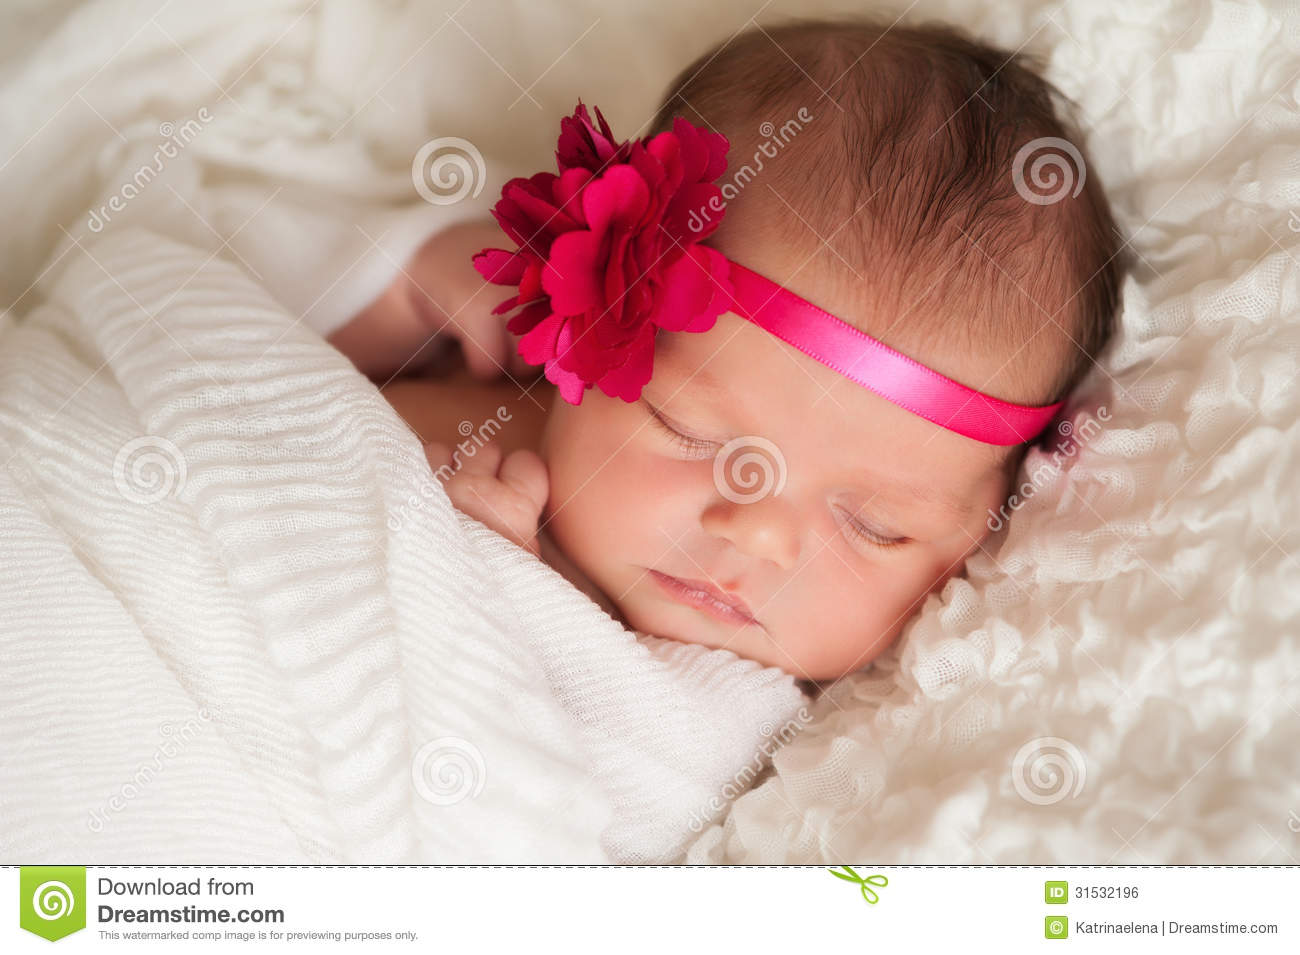 portrait of a beautiful newborn baby girl stock photo - image of